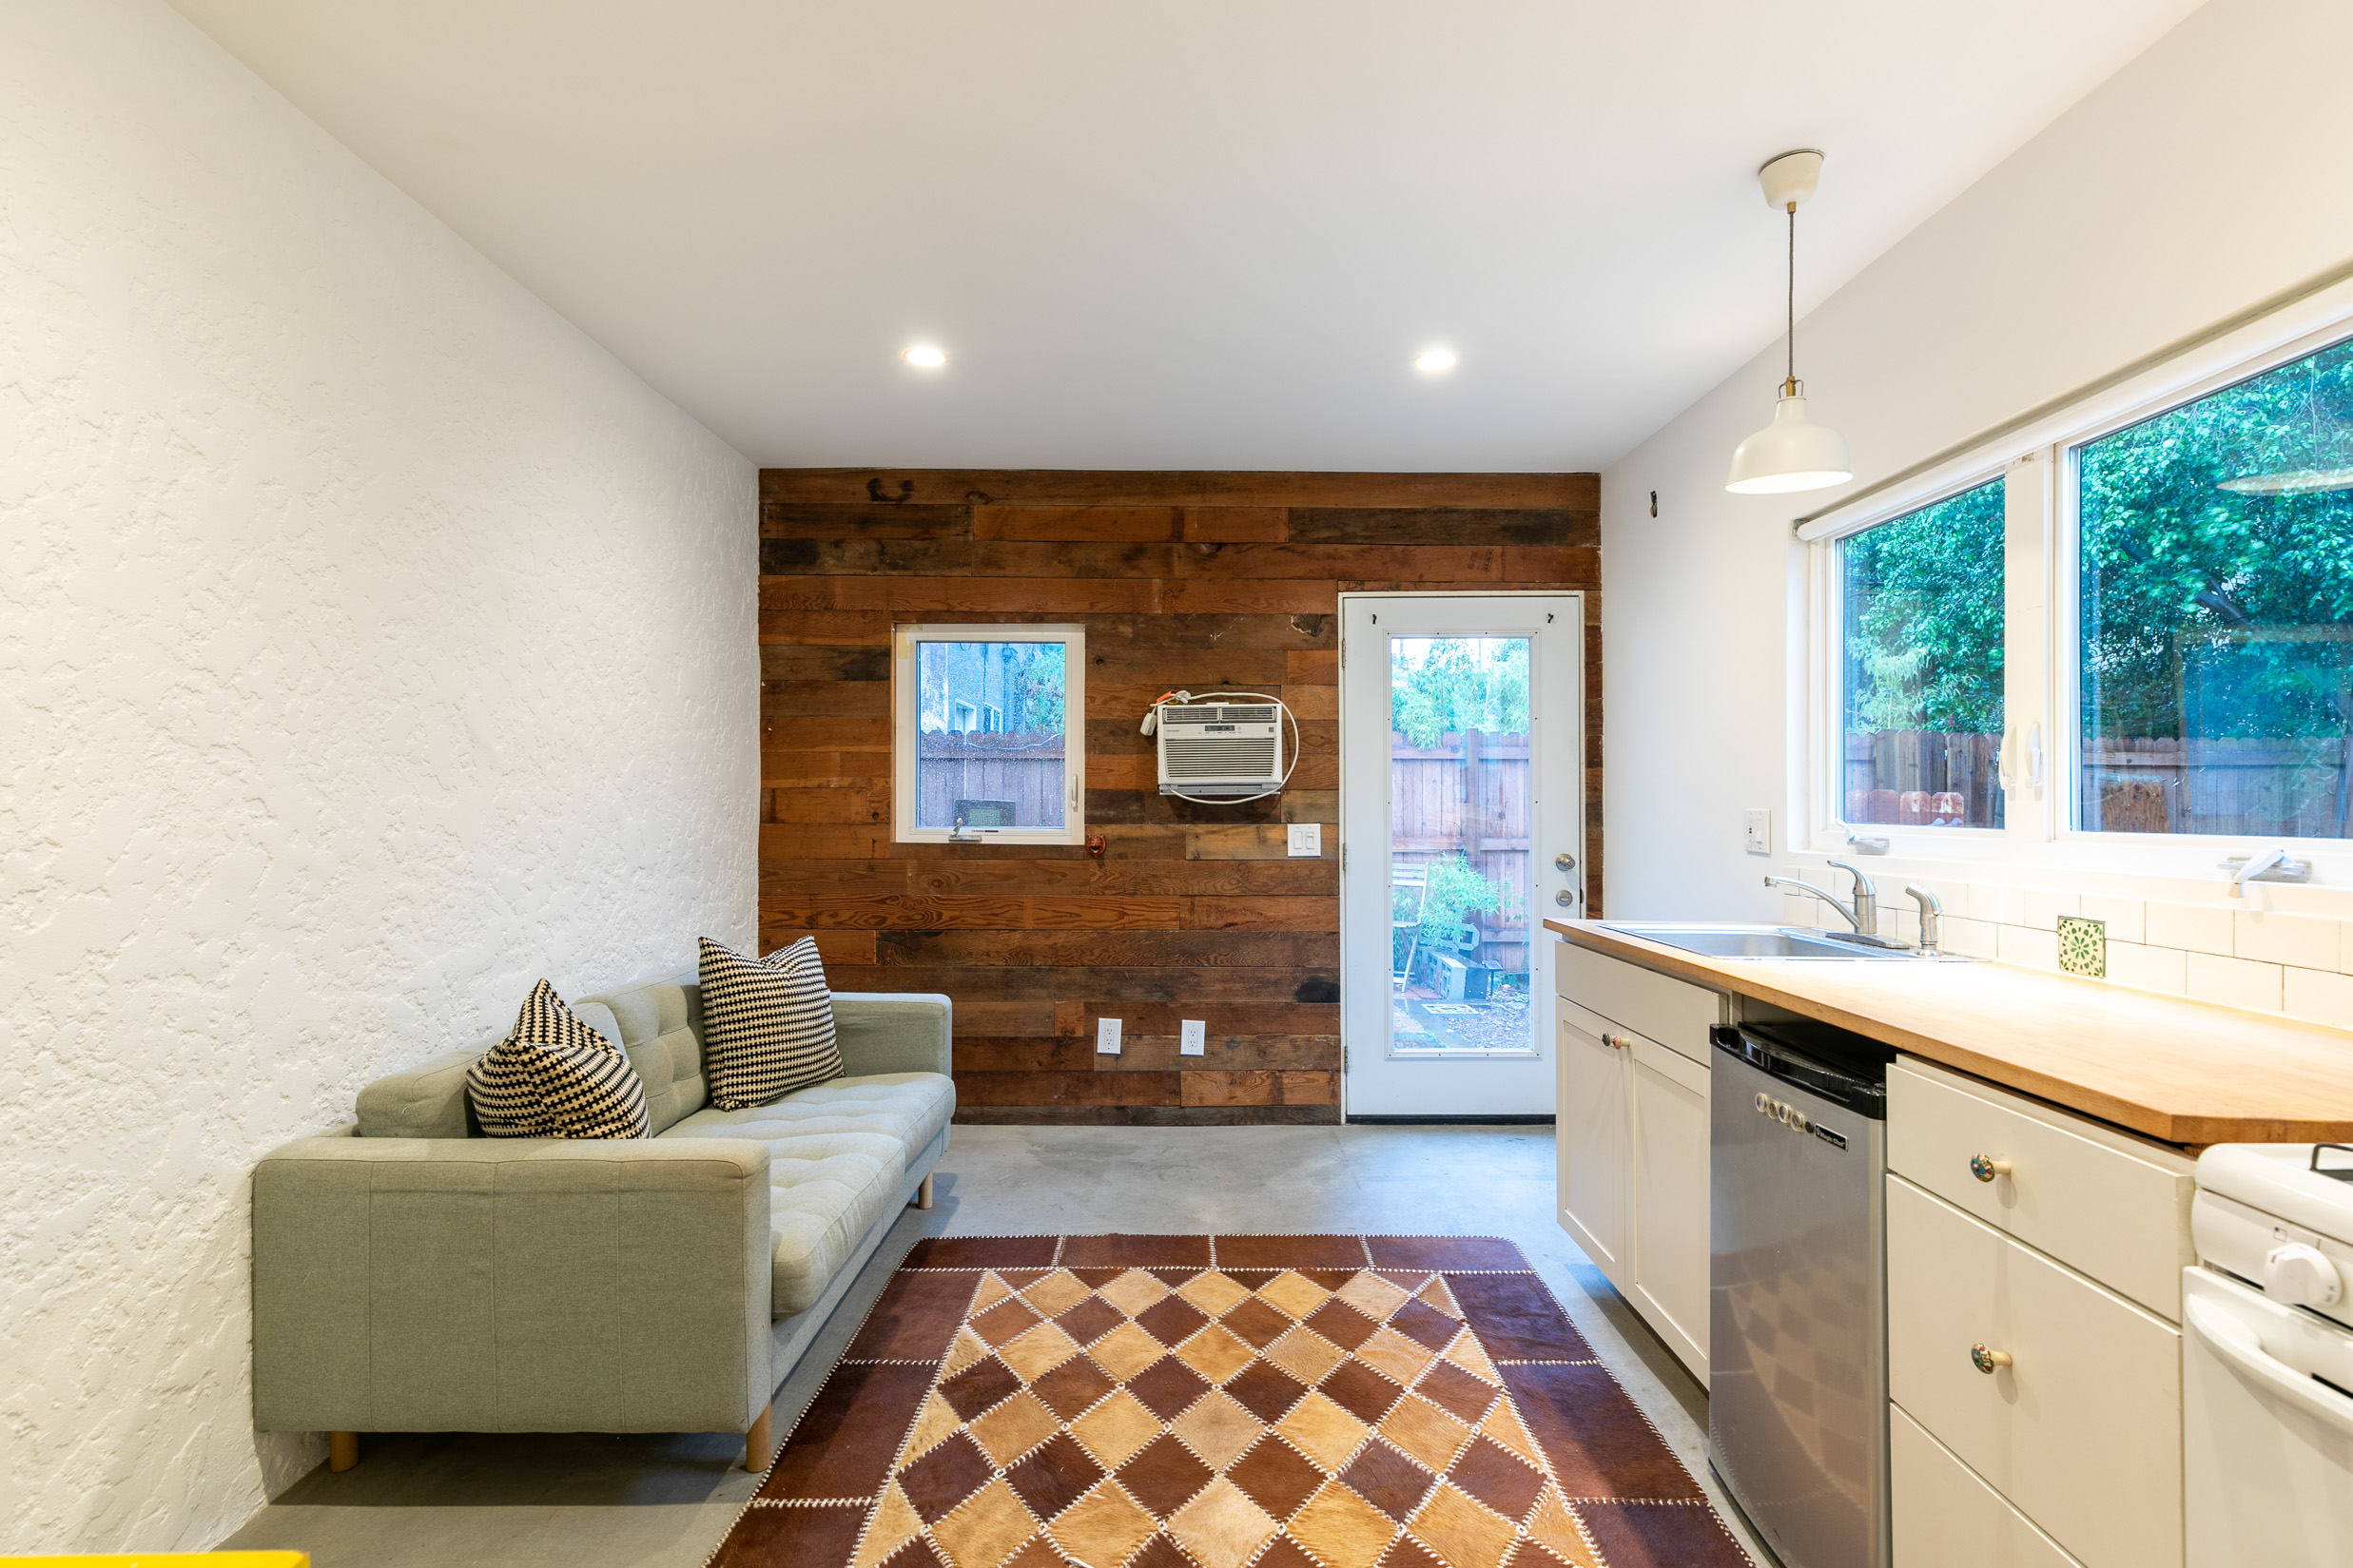 Your Valley living dreams can come true with this ADORABLE guest house in the heart of the energetic NoHo Arts District!